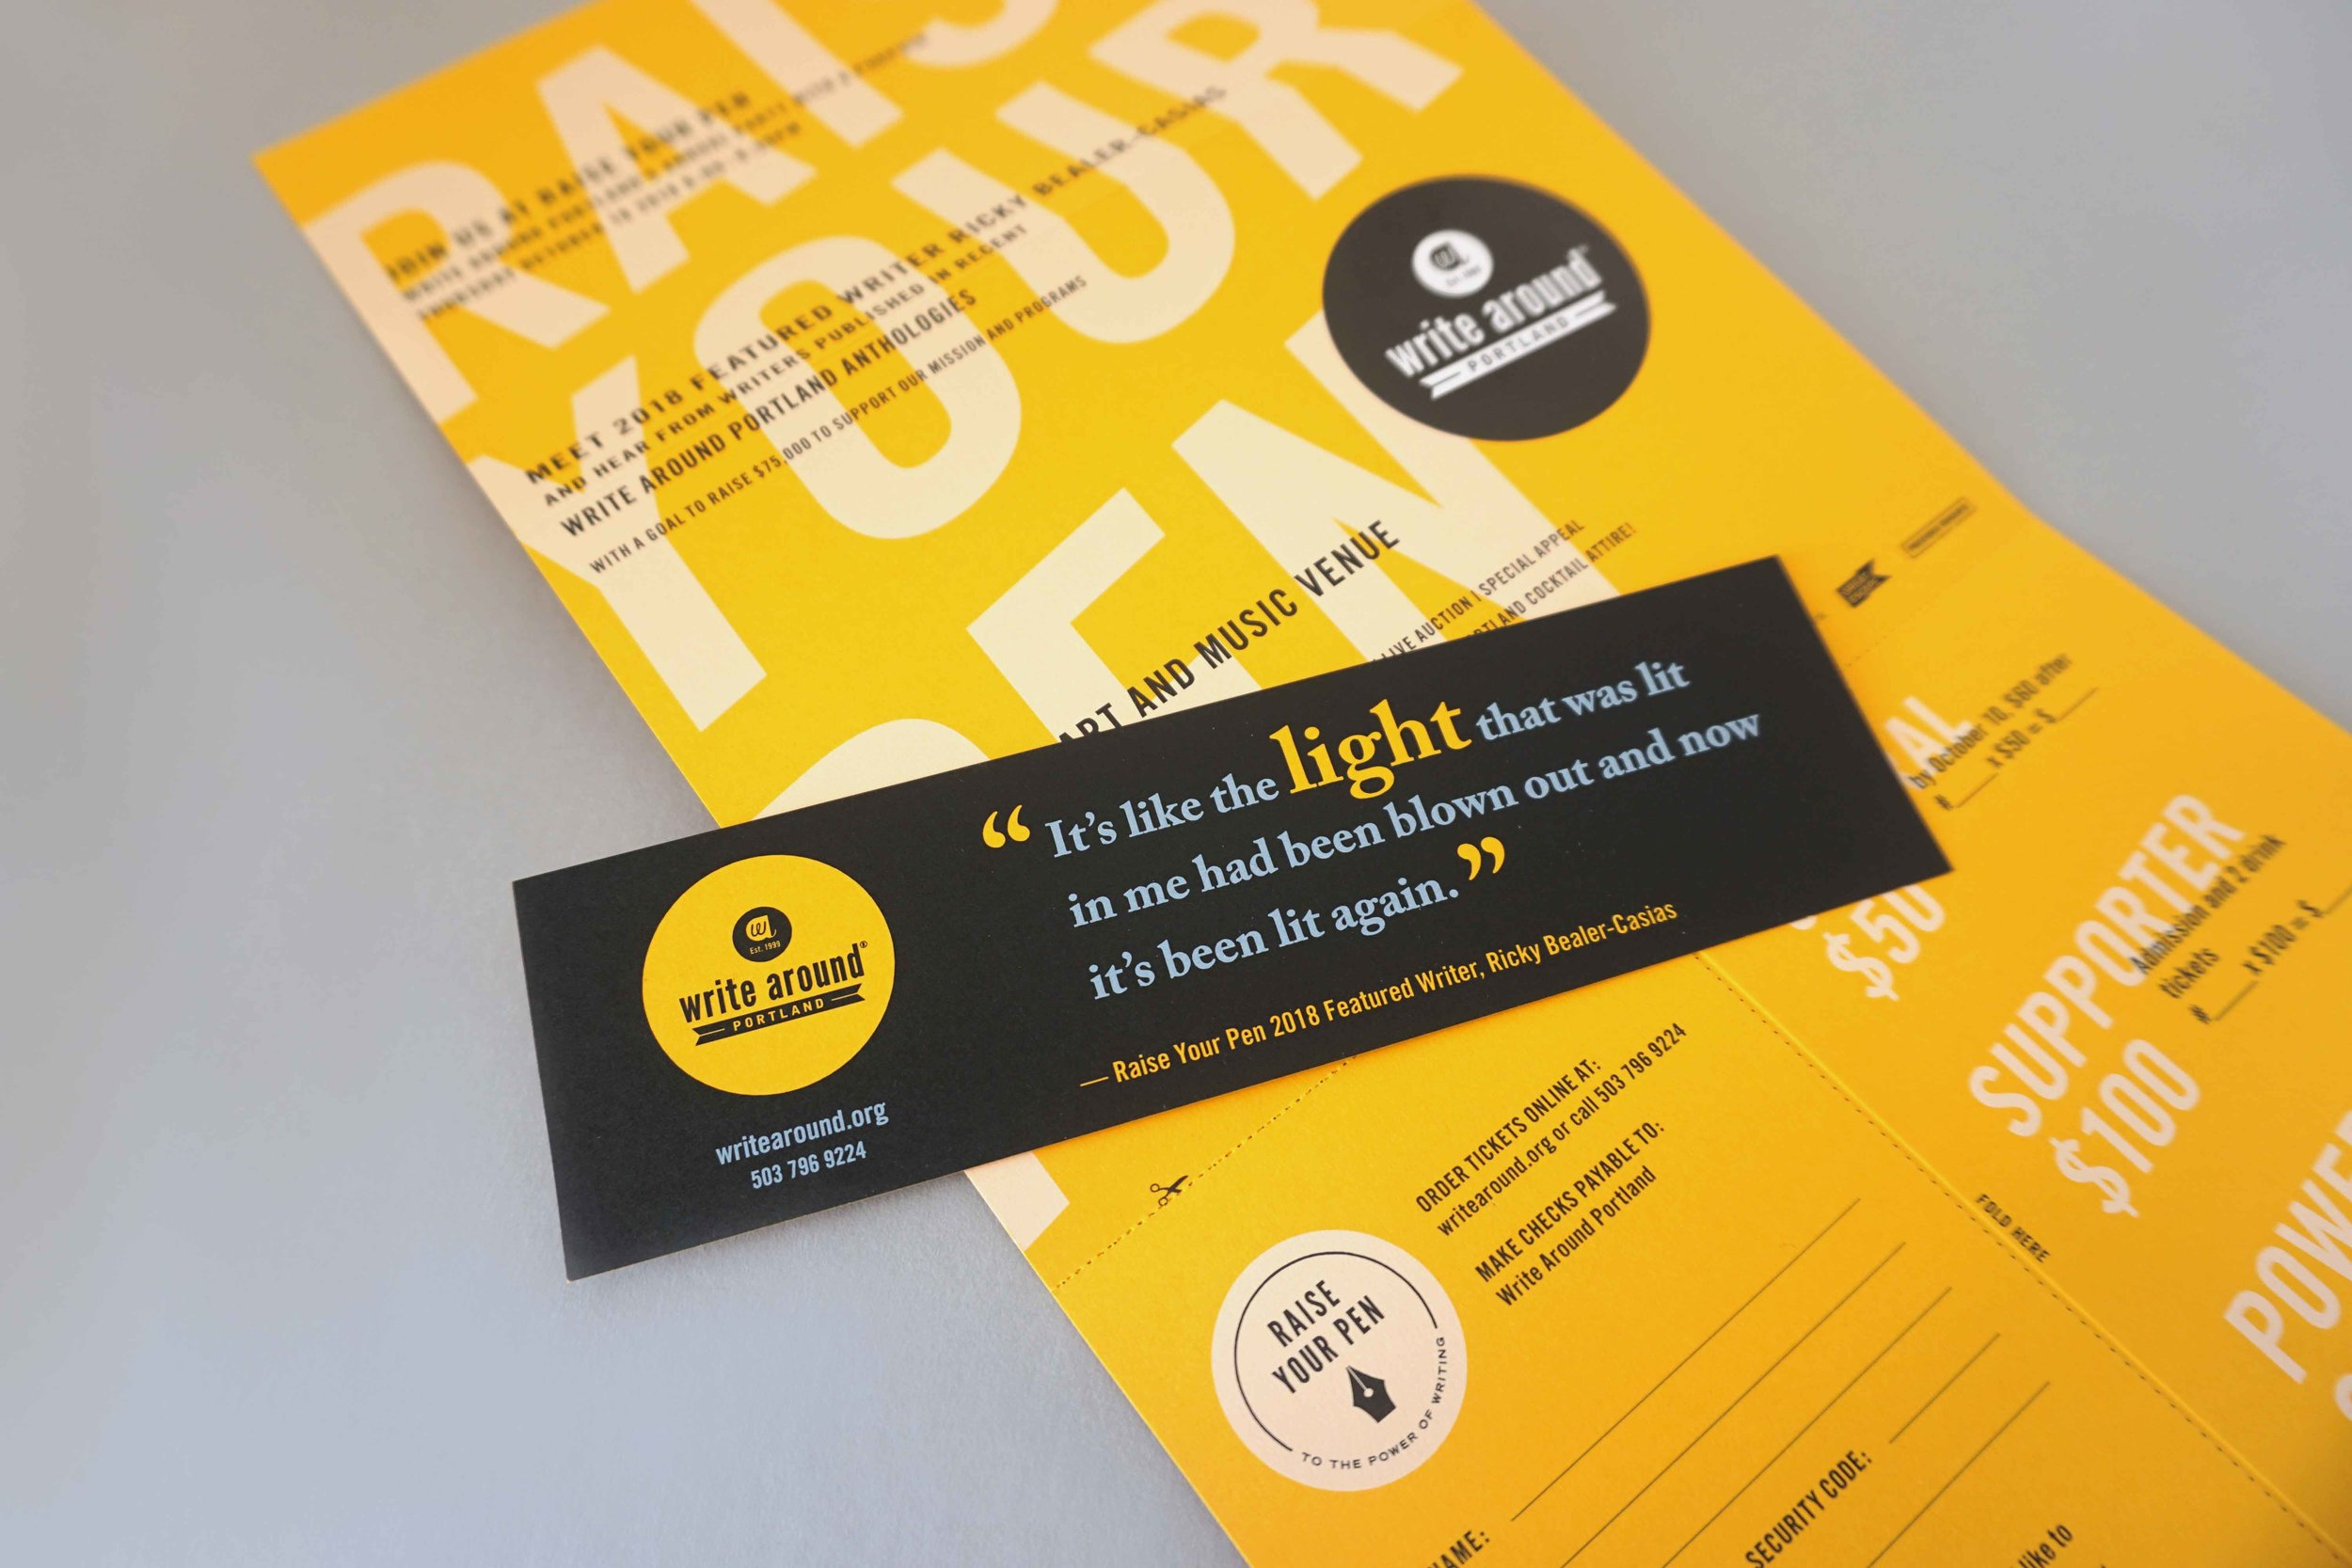 Each invitation also included a bookmark highlighting a quote from the event's featured speaker.